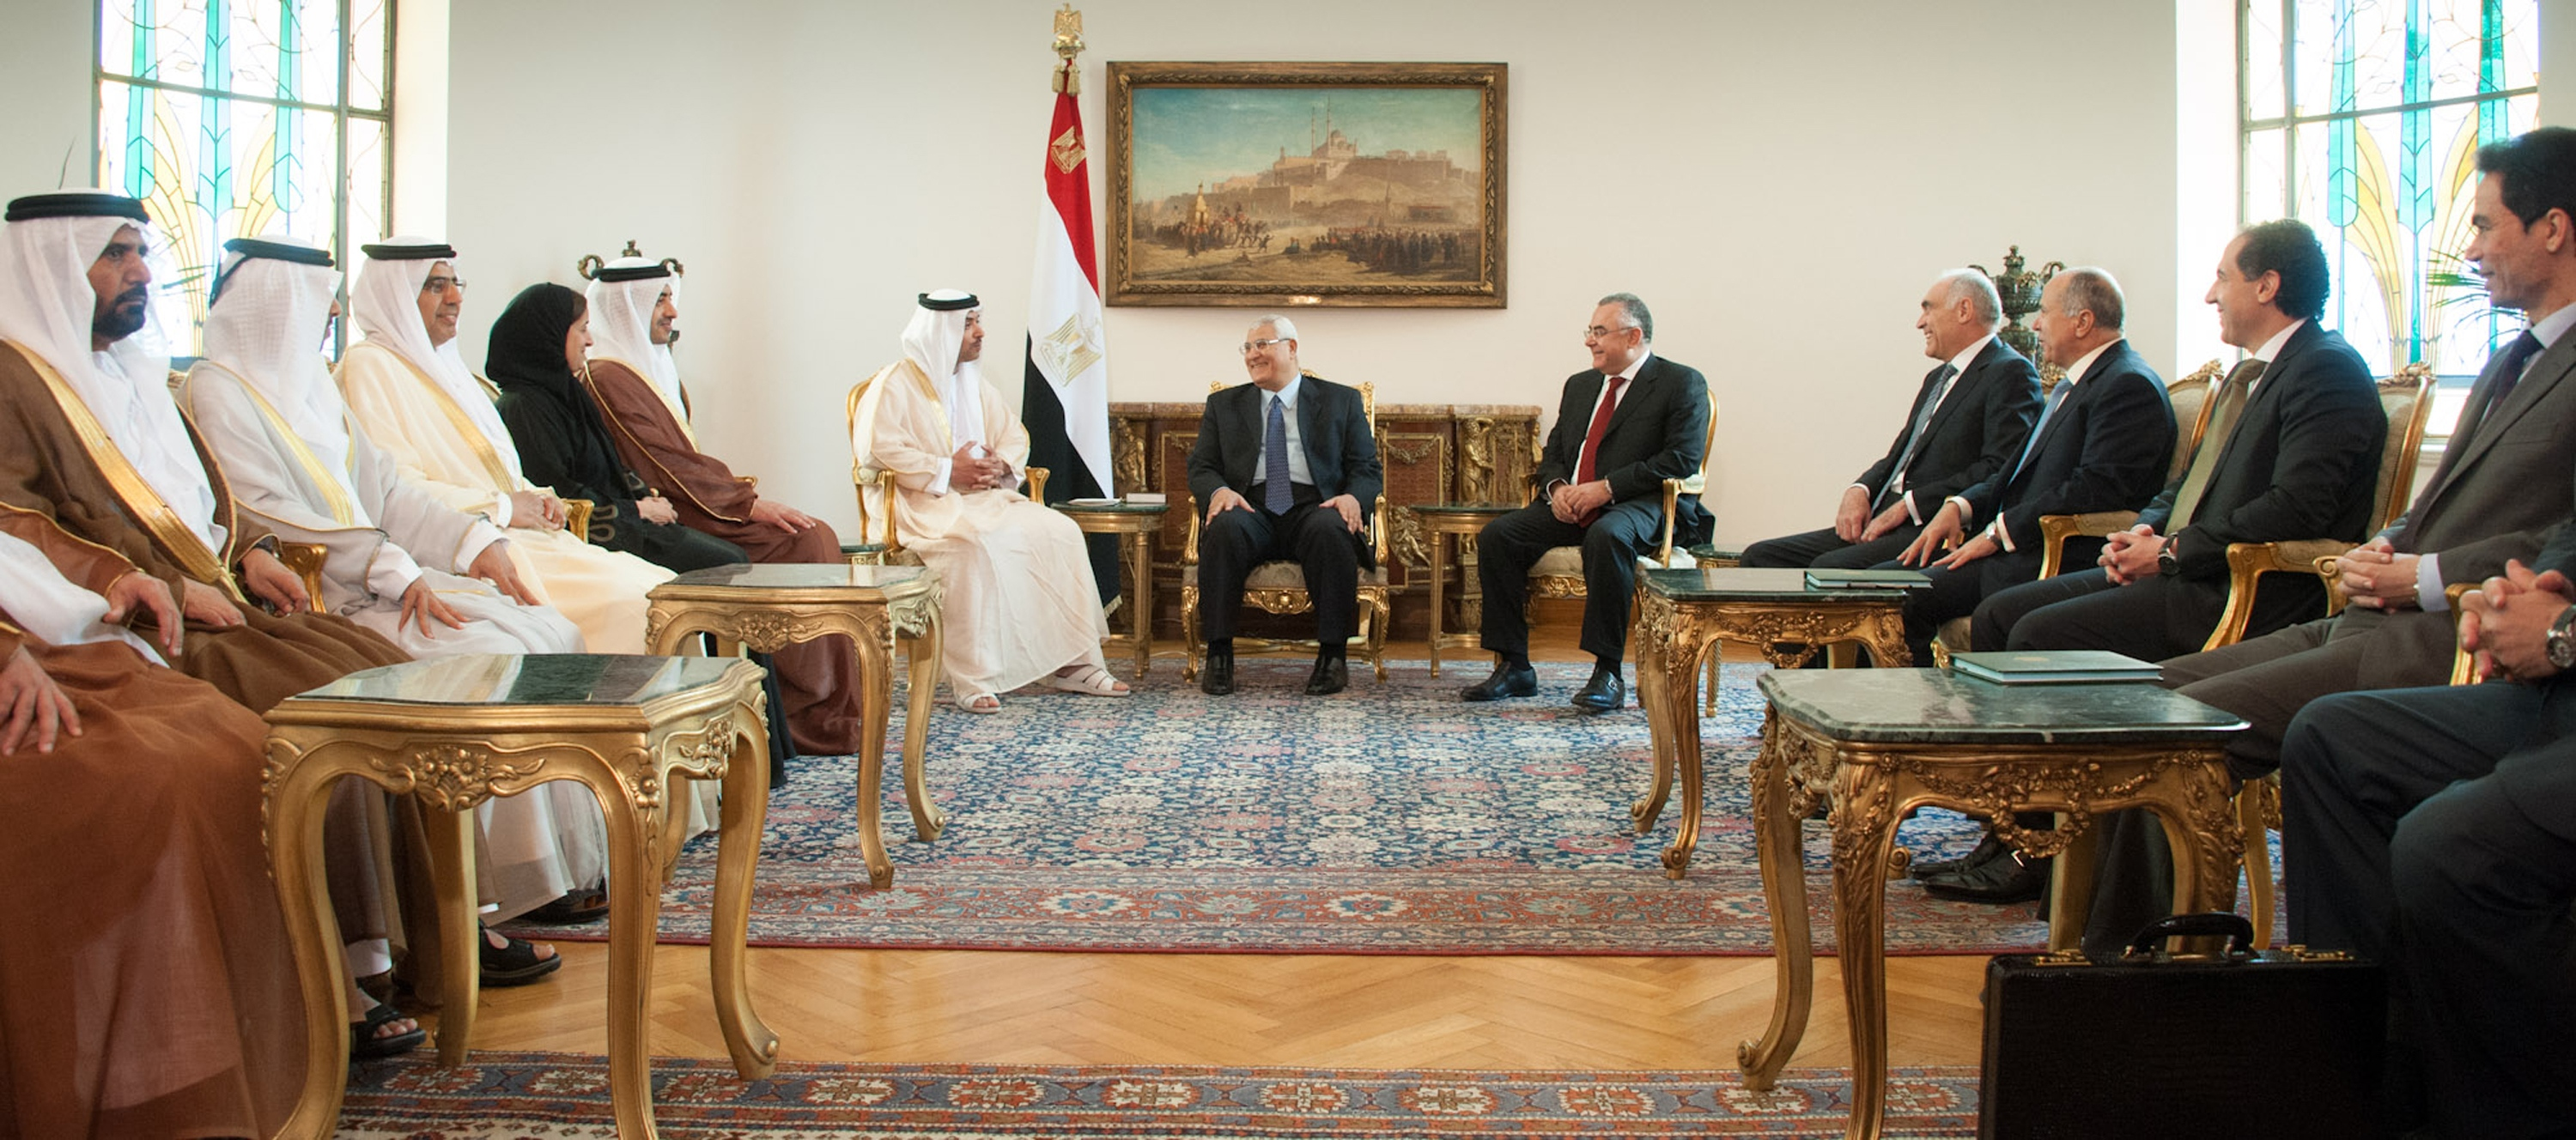 A handout picture released by the Egyptian Presidency shows Egypt's interim president Adly Mansour (C) meets with UAE National Security Chief Sheikh Hazza bin Zayed al-Nahyan (C-L) on July 9, 2013 in the Egyptian capital Cairo. (AFP Photo)